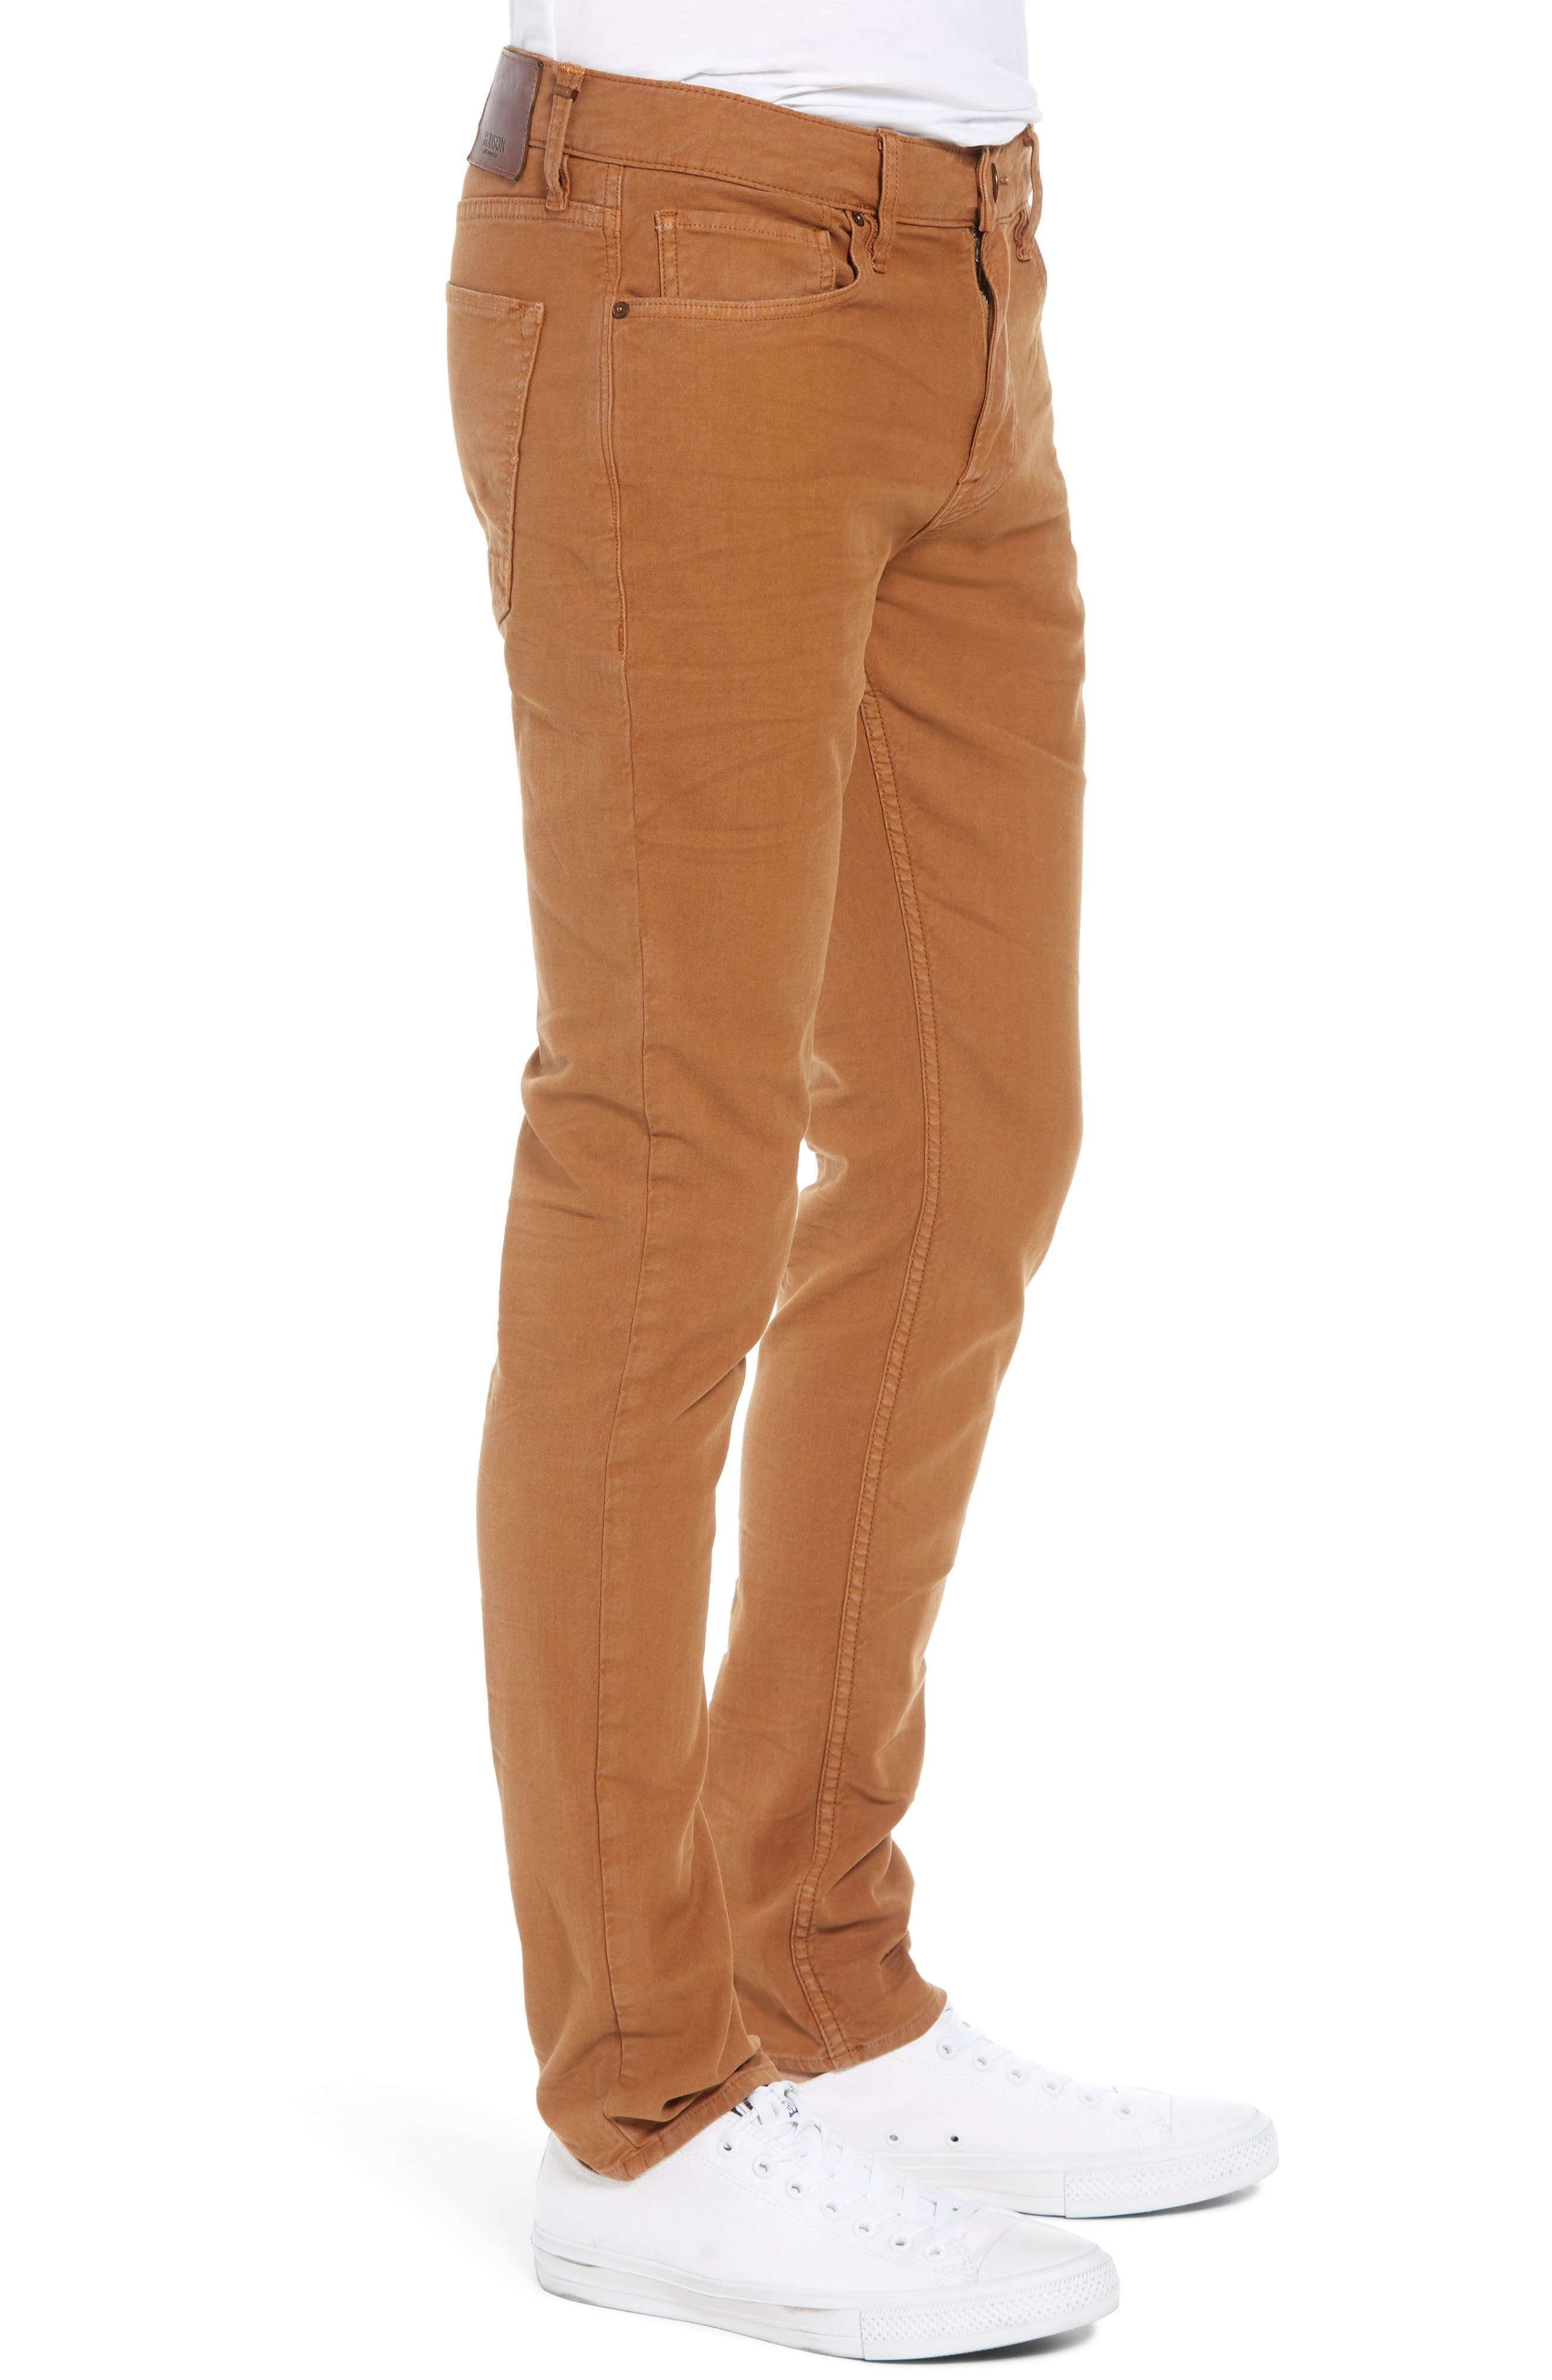 Axl Skinny Fit Jeans,                             Alternate thumbnail 3, color,                             SIENNA